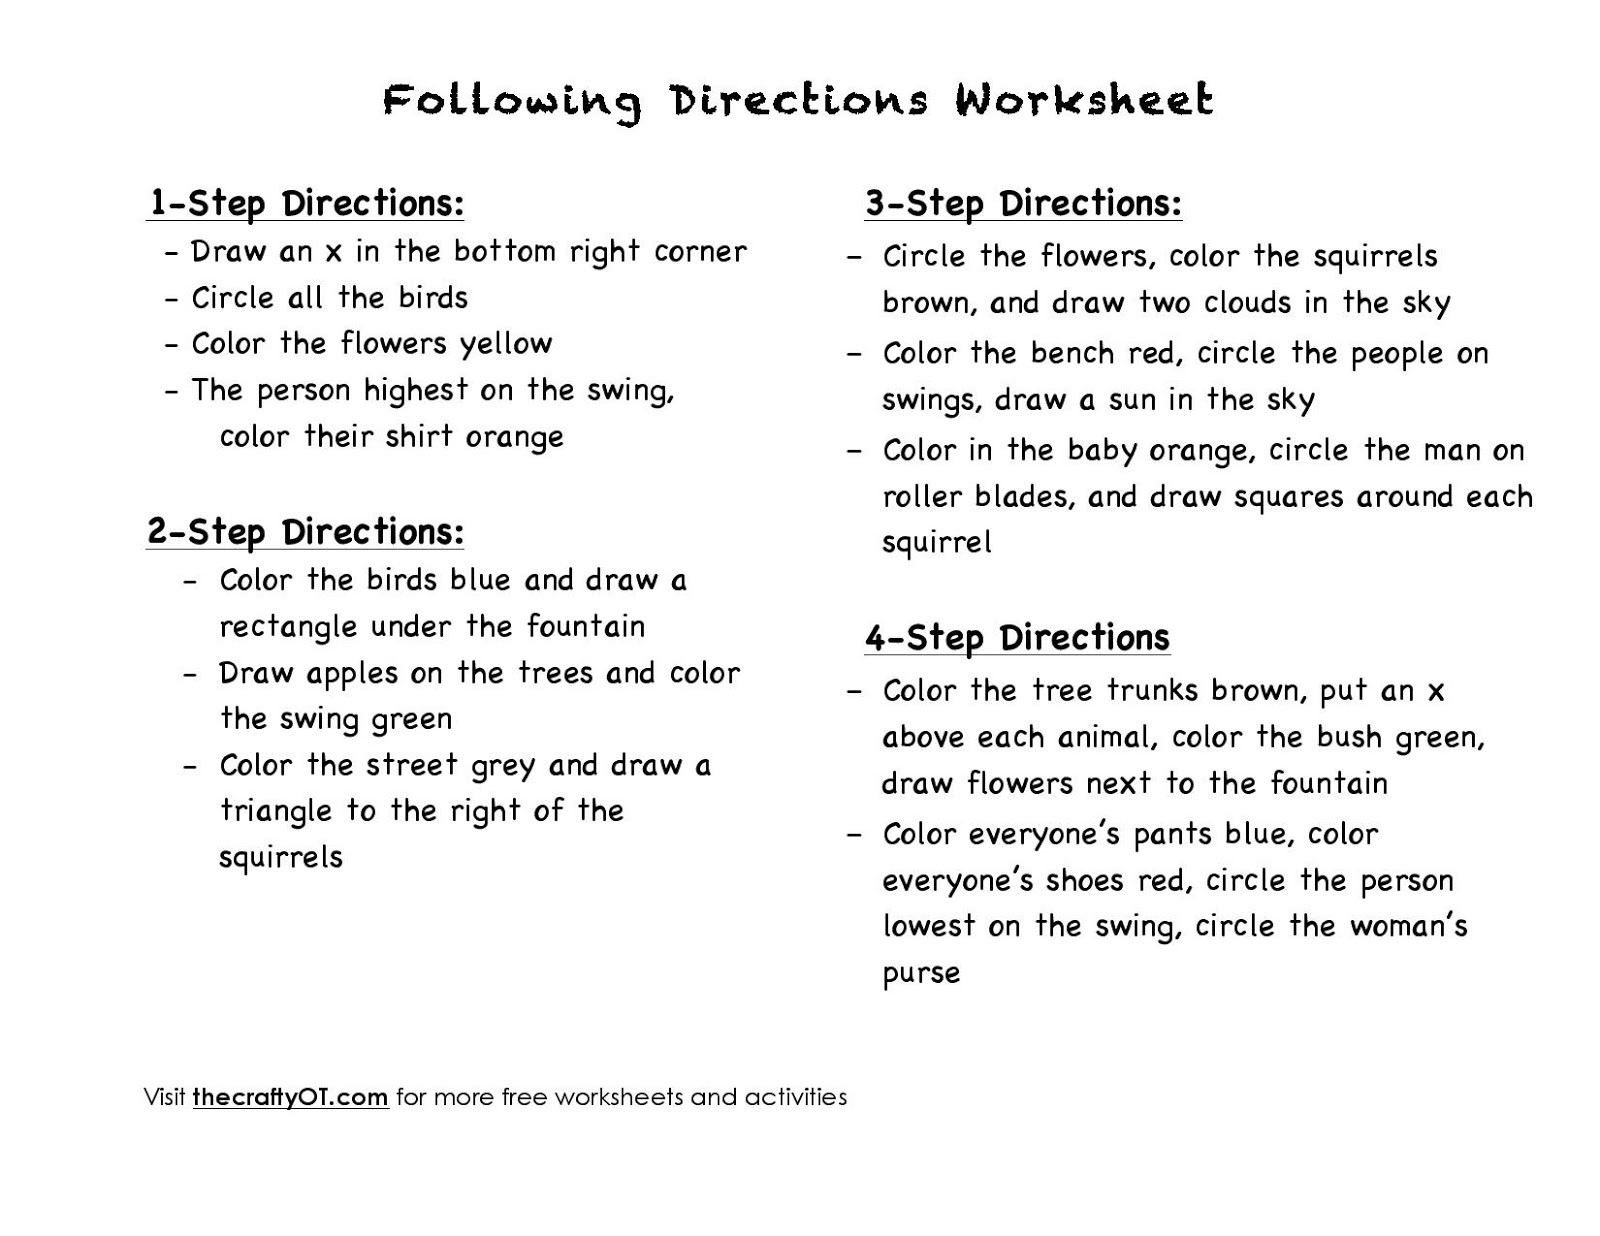 worksheet Free Therapy Worksheets the crafty ot free spring worksheets worksheets